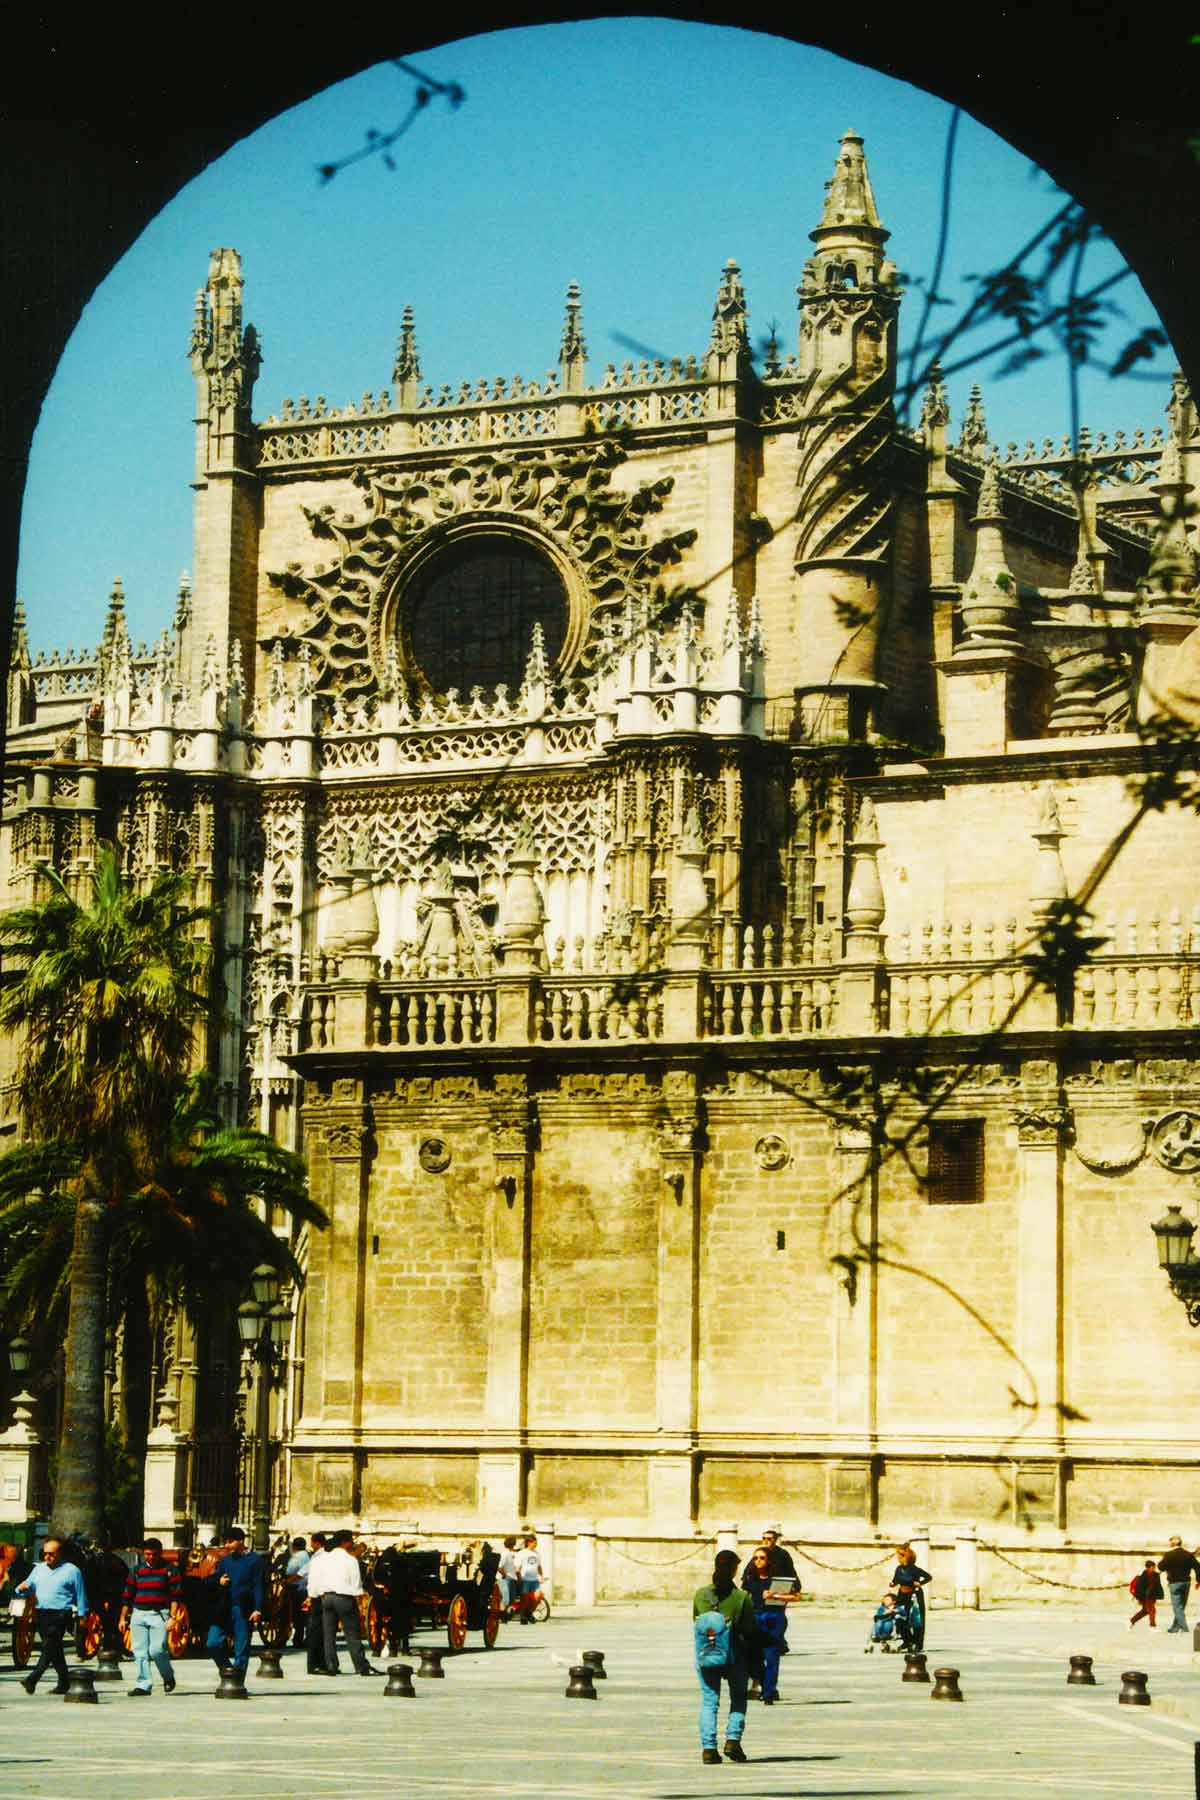 Seville Cathedral - Catedral de Seville - Steven Andrew Martin - Spain Photo Journal 1998